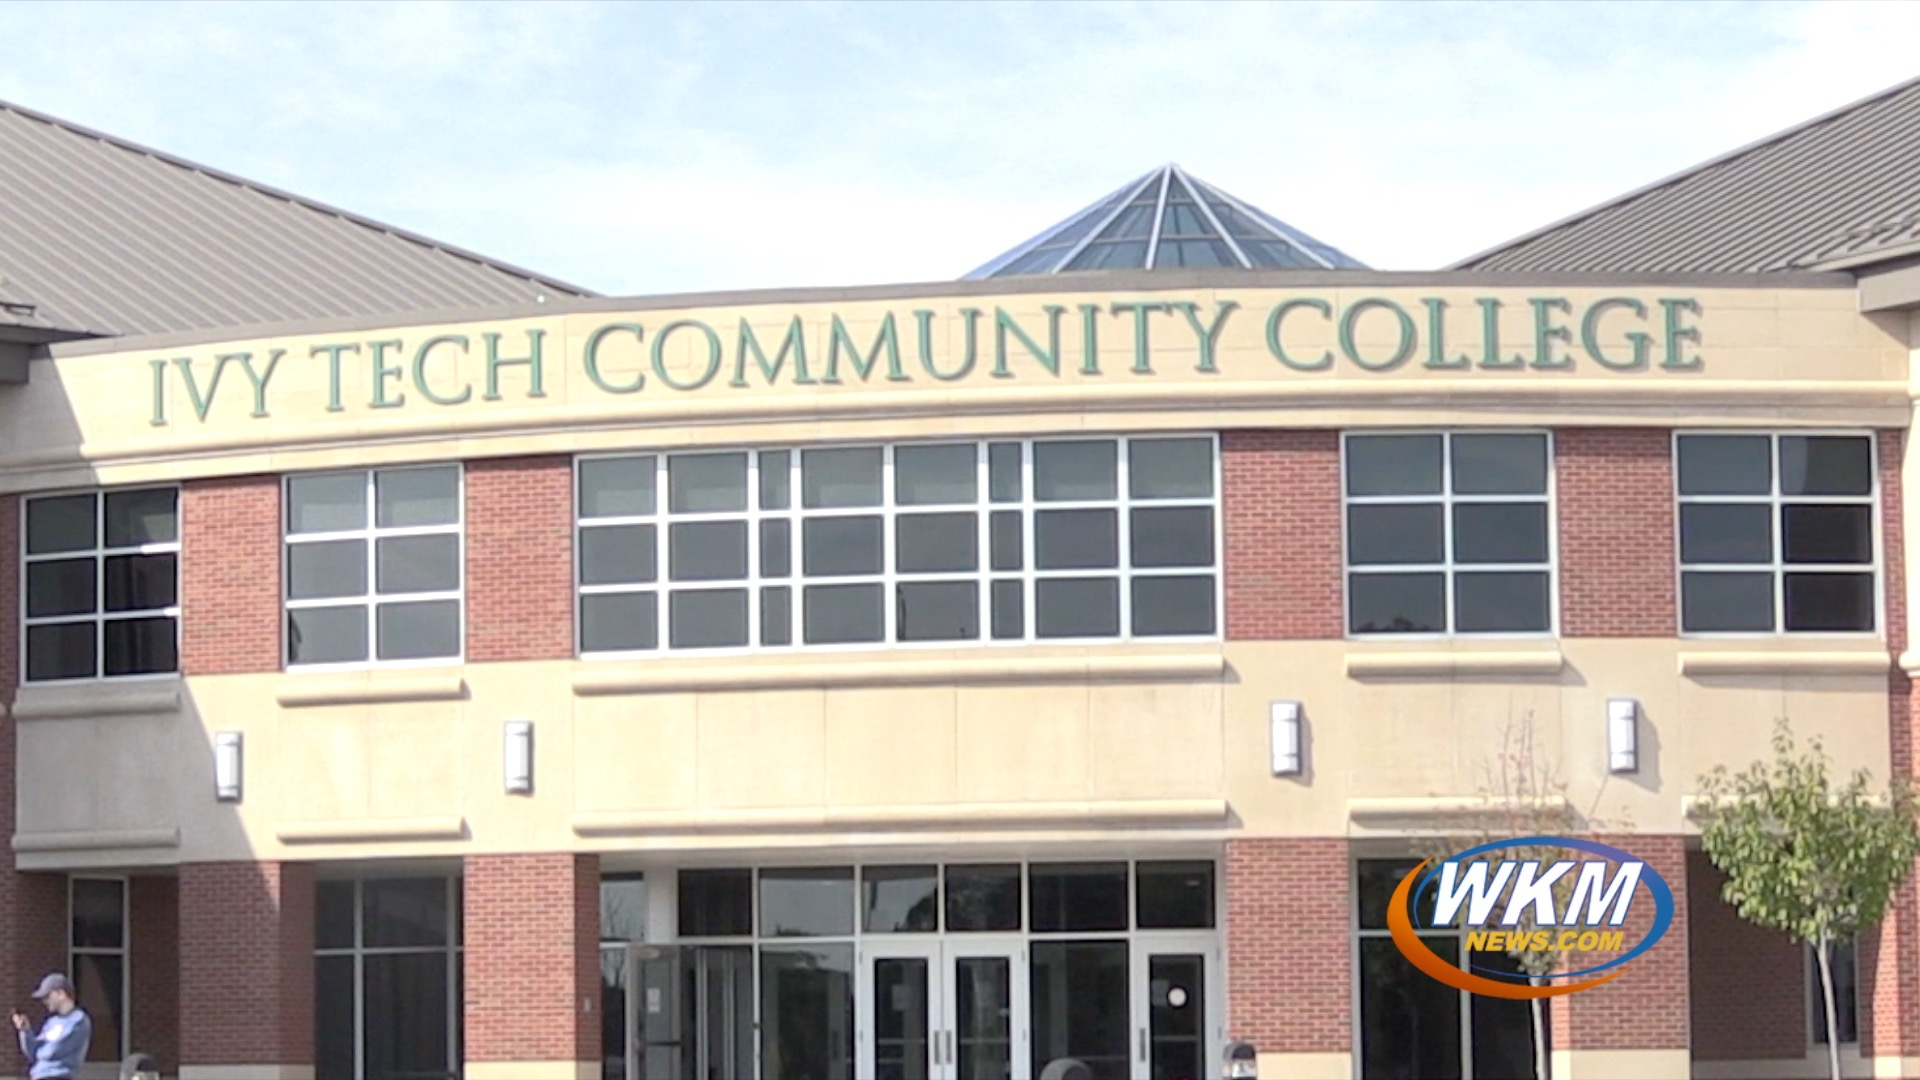 Ivy Tech Community College Launches Statewide Campaign: Invest IN Ivy Tech